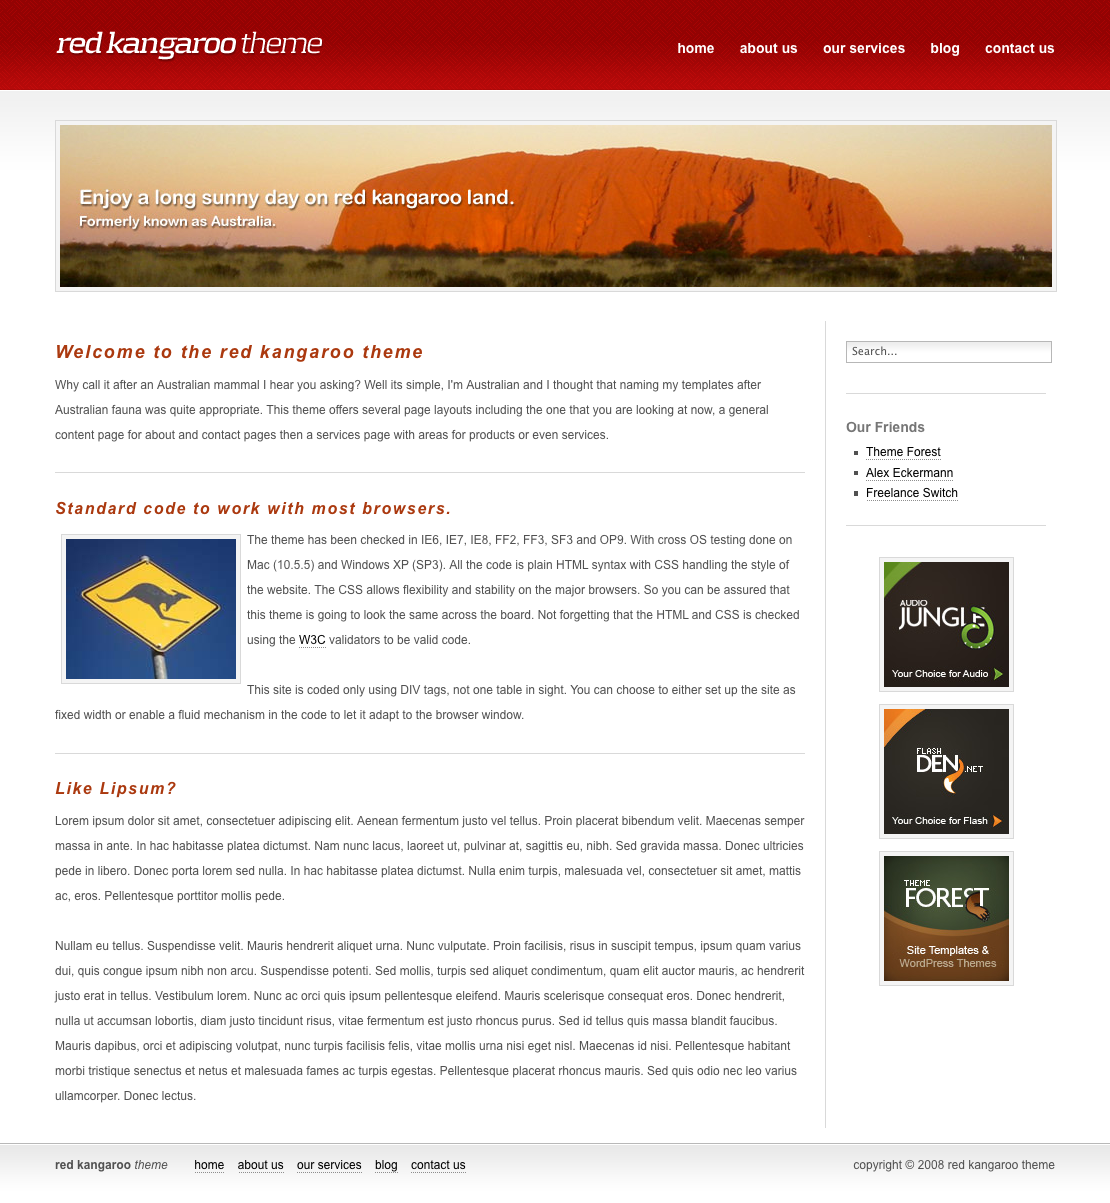 Red Kangaroo - The front page has an attention grabbing photo area above the main content which is perfect for advertising a major product or service. The content is flexible and adaptable enough to handle a fixed or fluid width website.